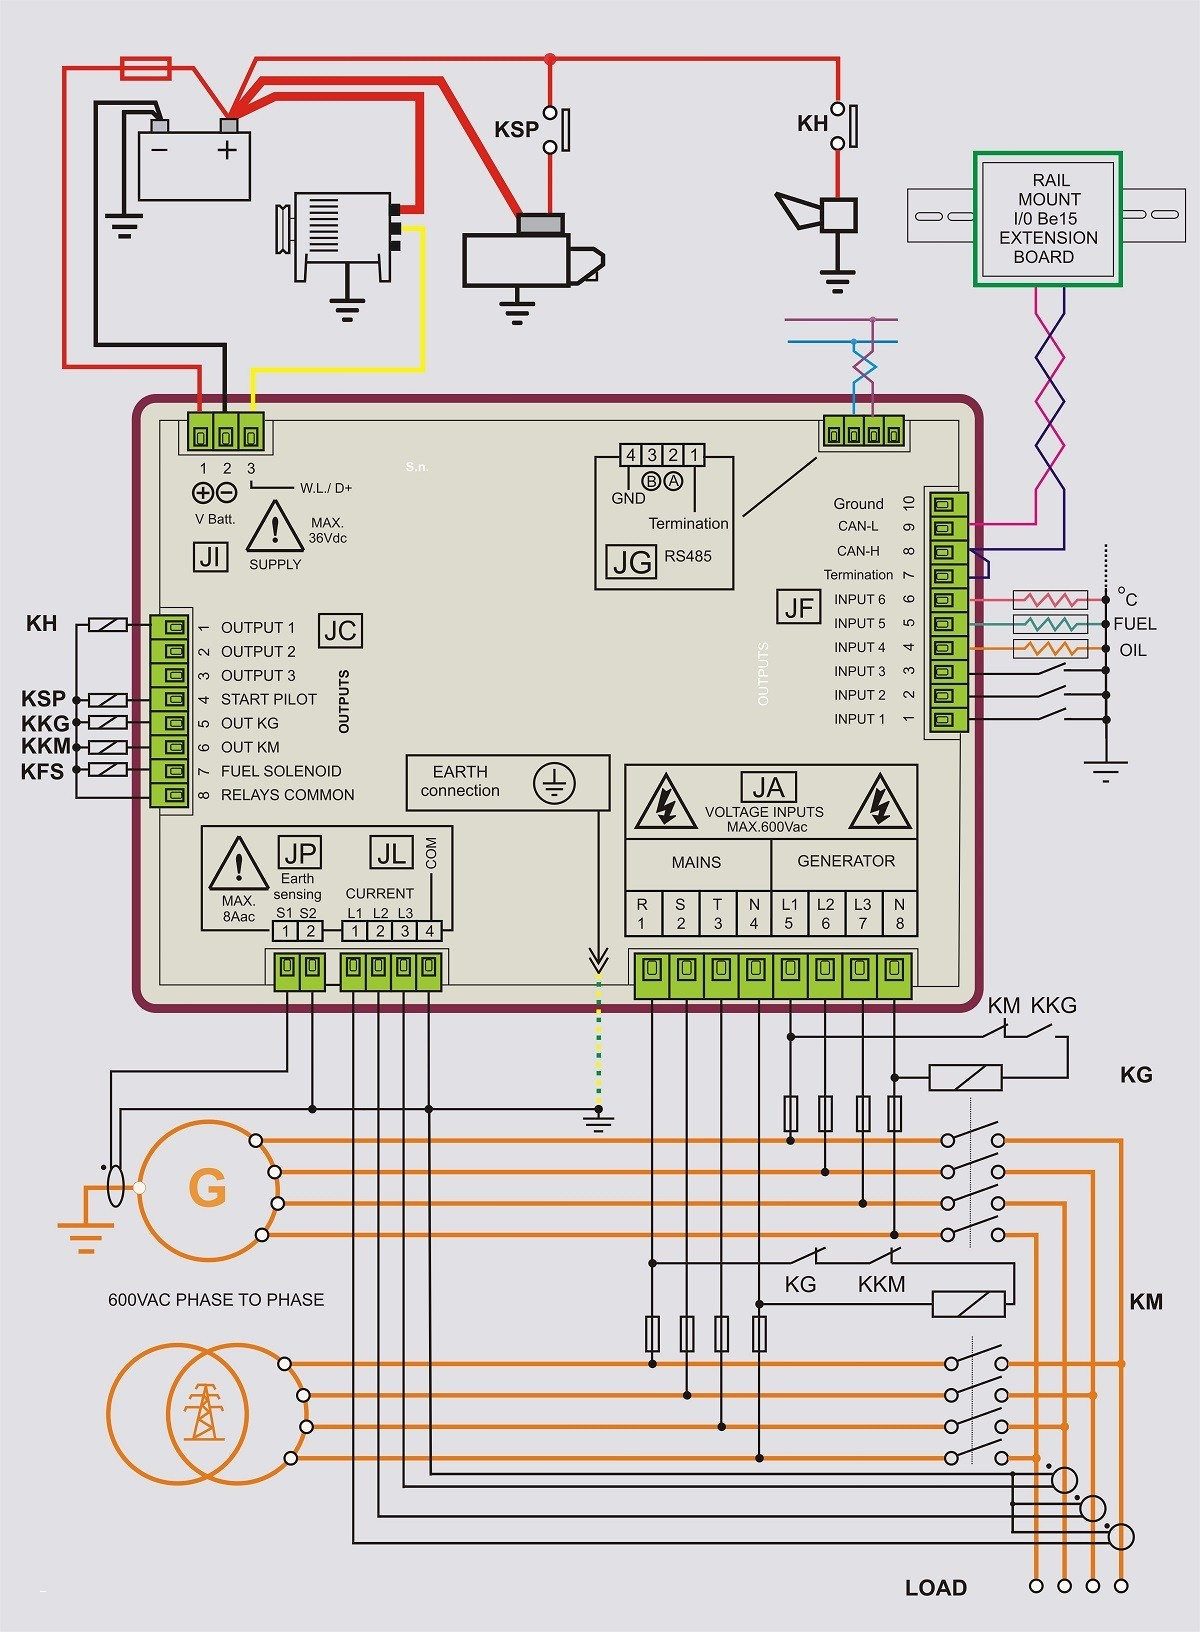 Generator Transfer Switch Wiring Diagram Generac Automatic Transfer Switch Wiring Diagram Of Generator Transfer Switch Wiring Diagram